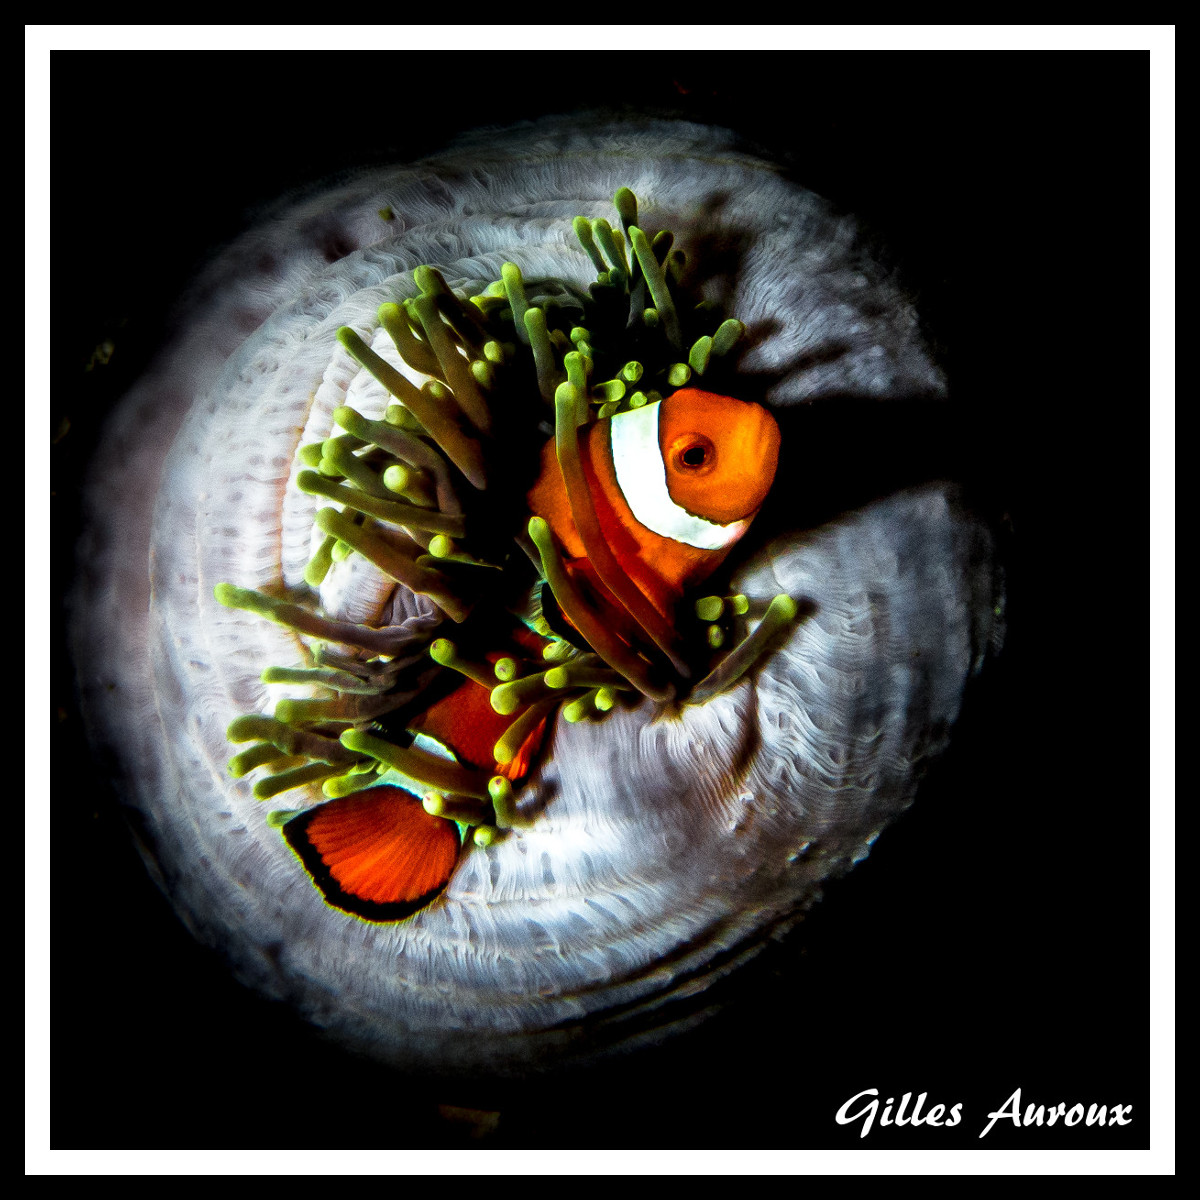 Portfolio photo sous-marine: Poisson clown dans son anémone